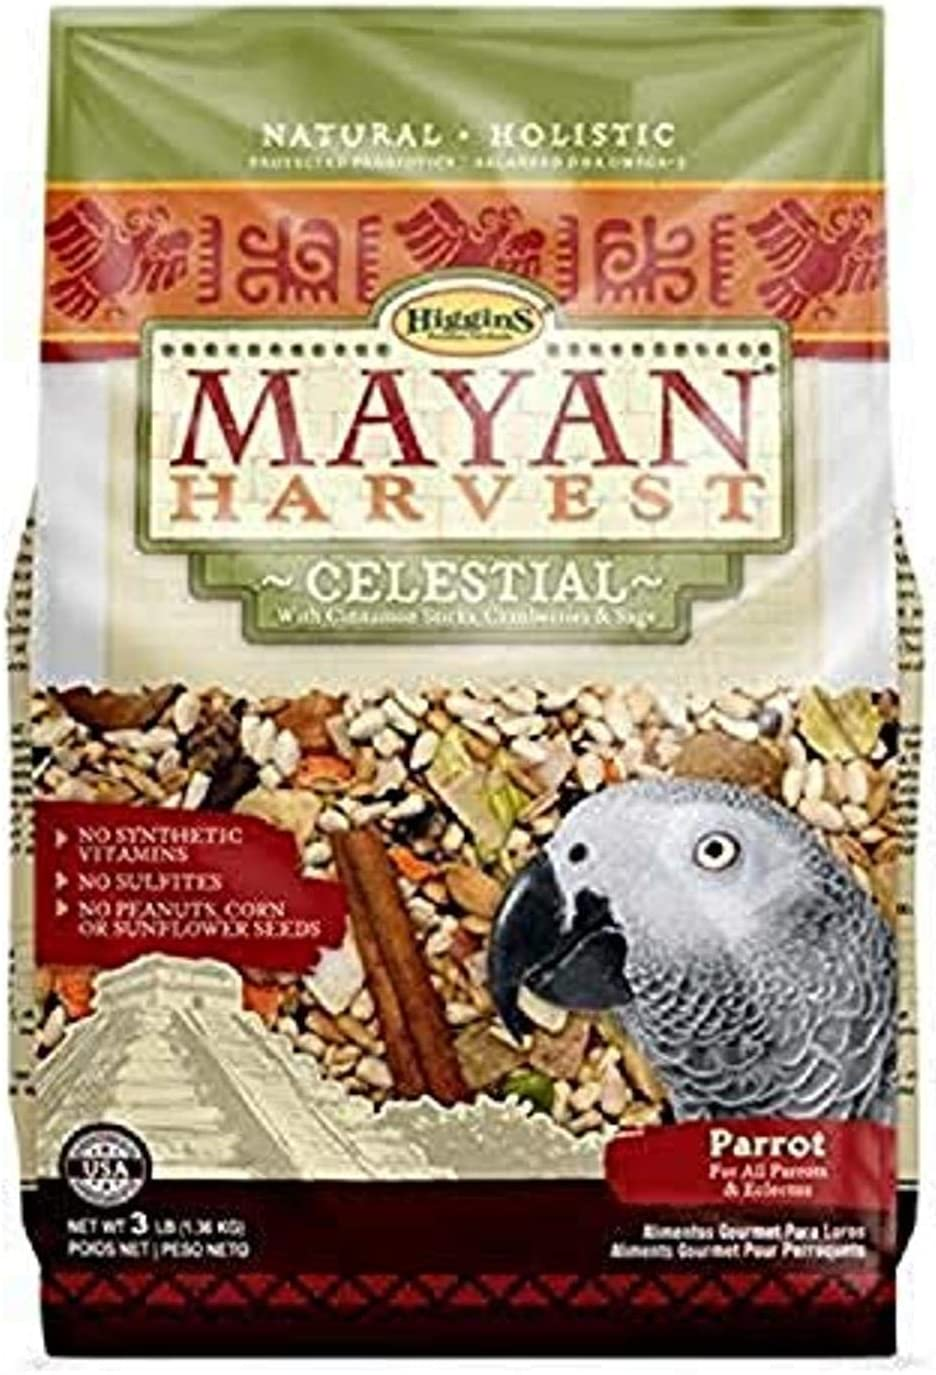 Higgins 466213 Mayan Harvest Celestial For All Parrots - 3 Pound